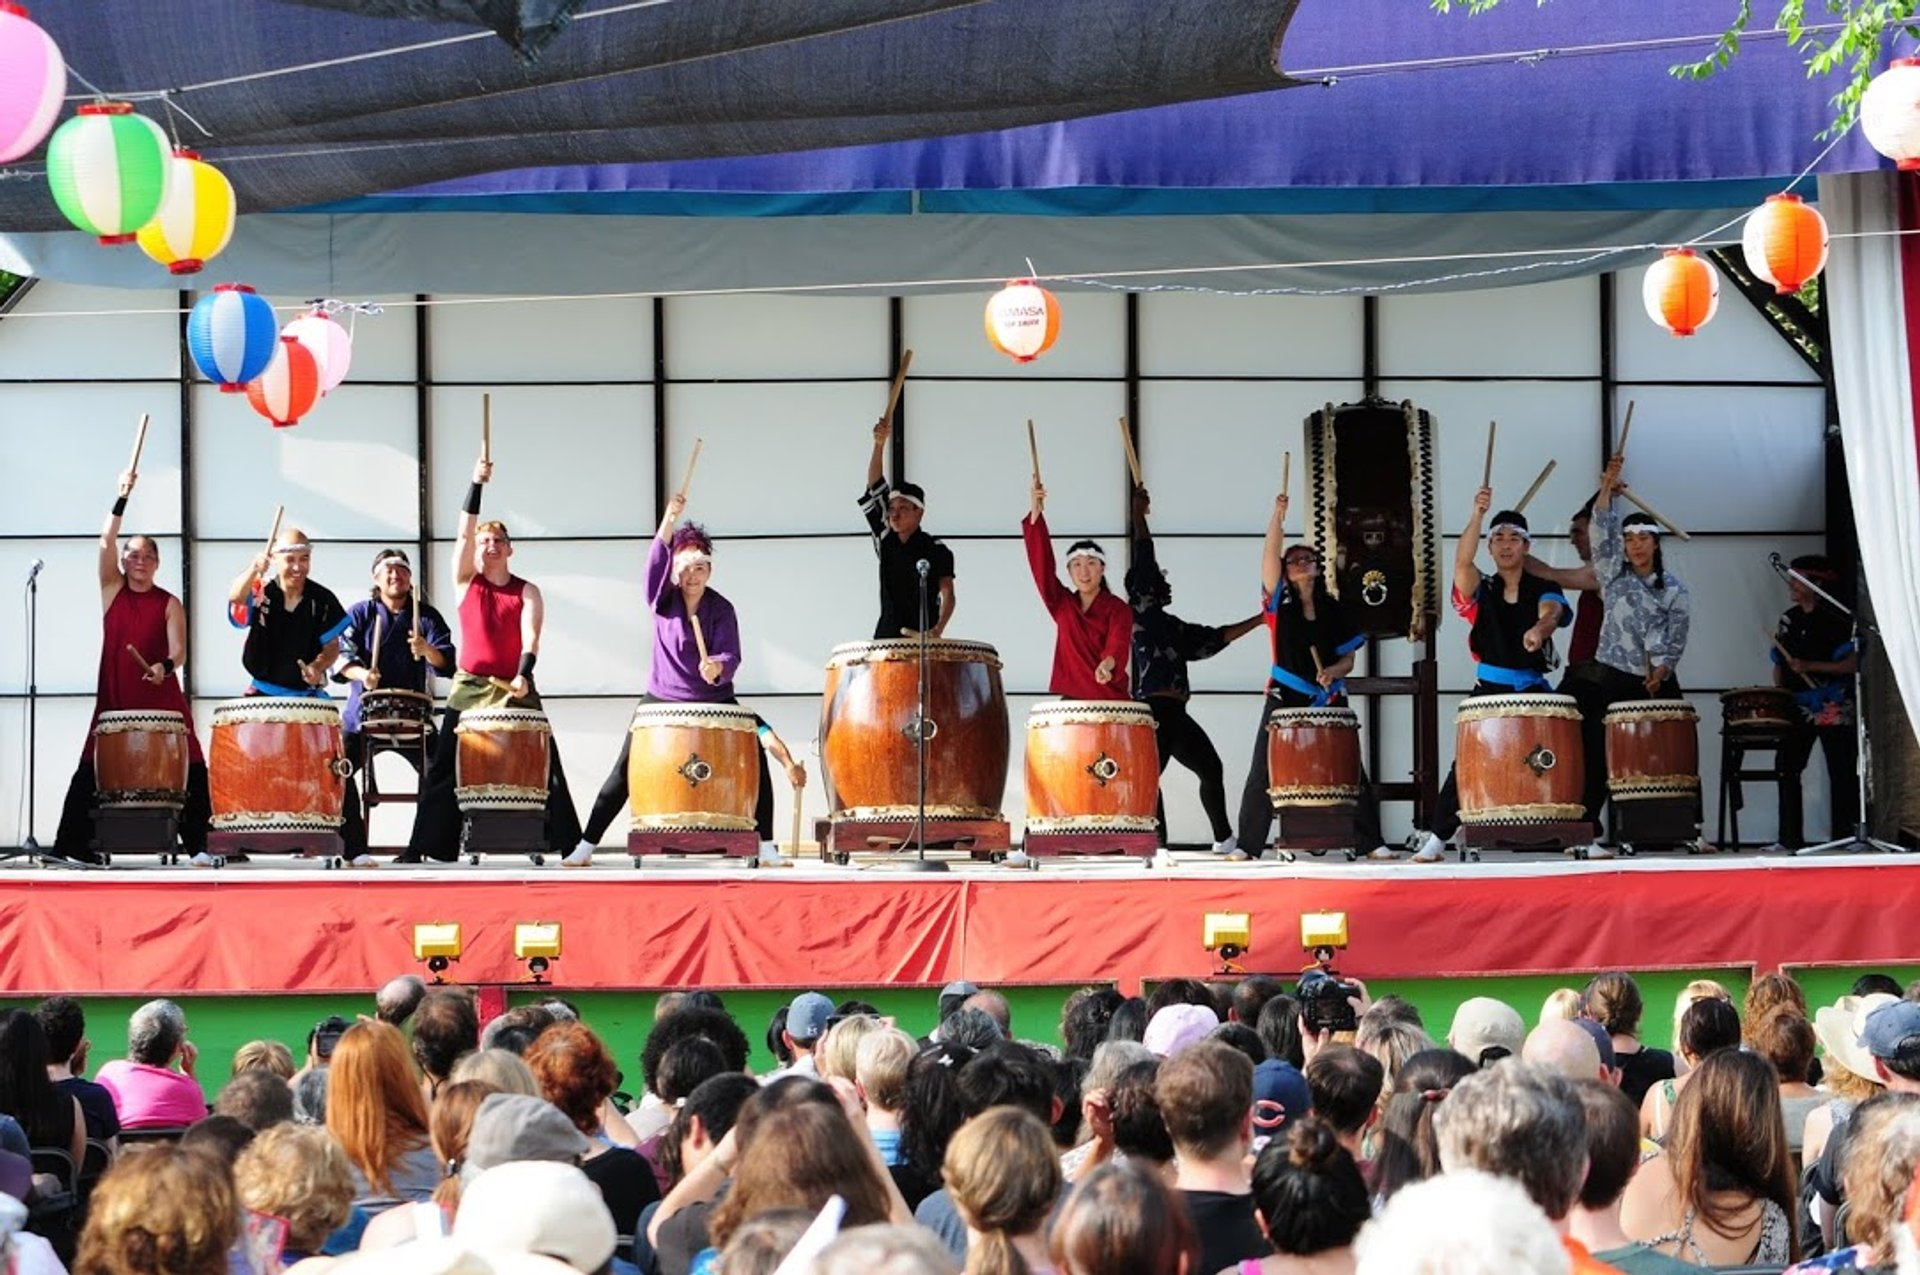 Taiko drummers 2020